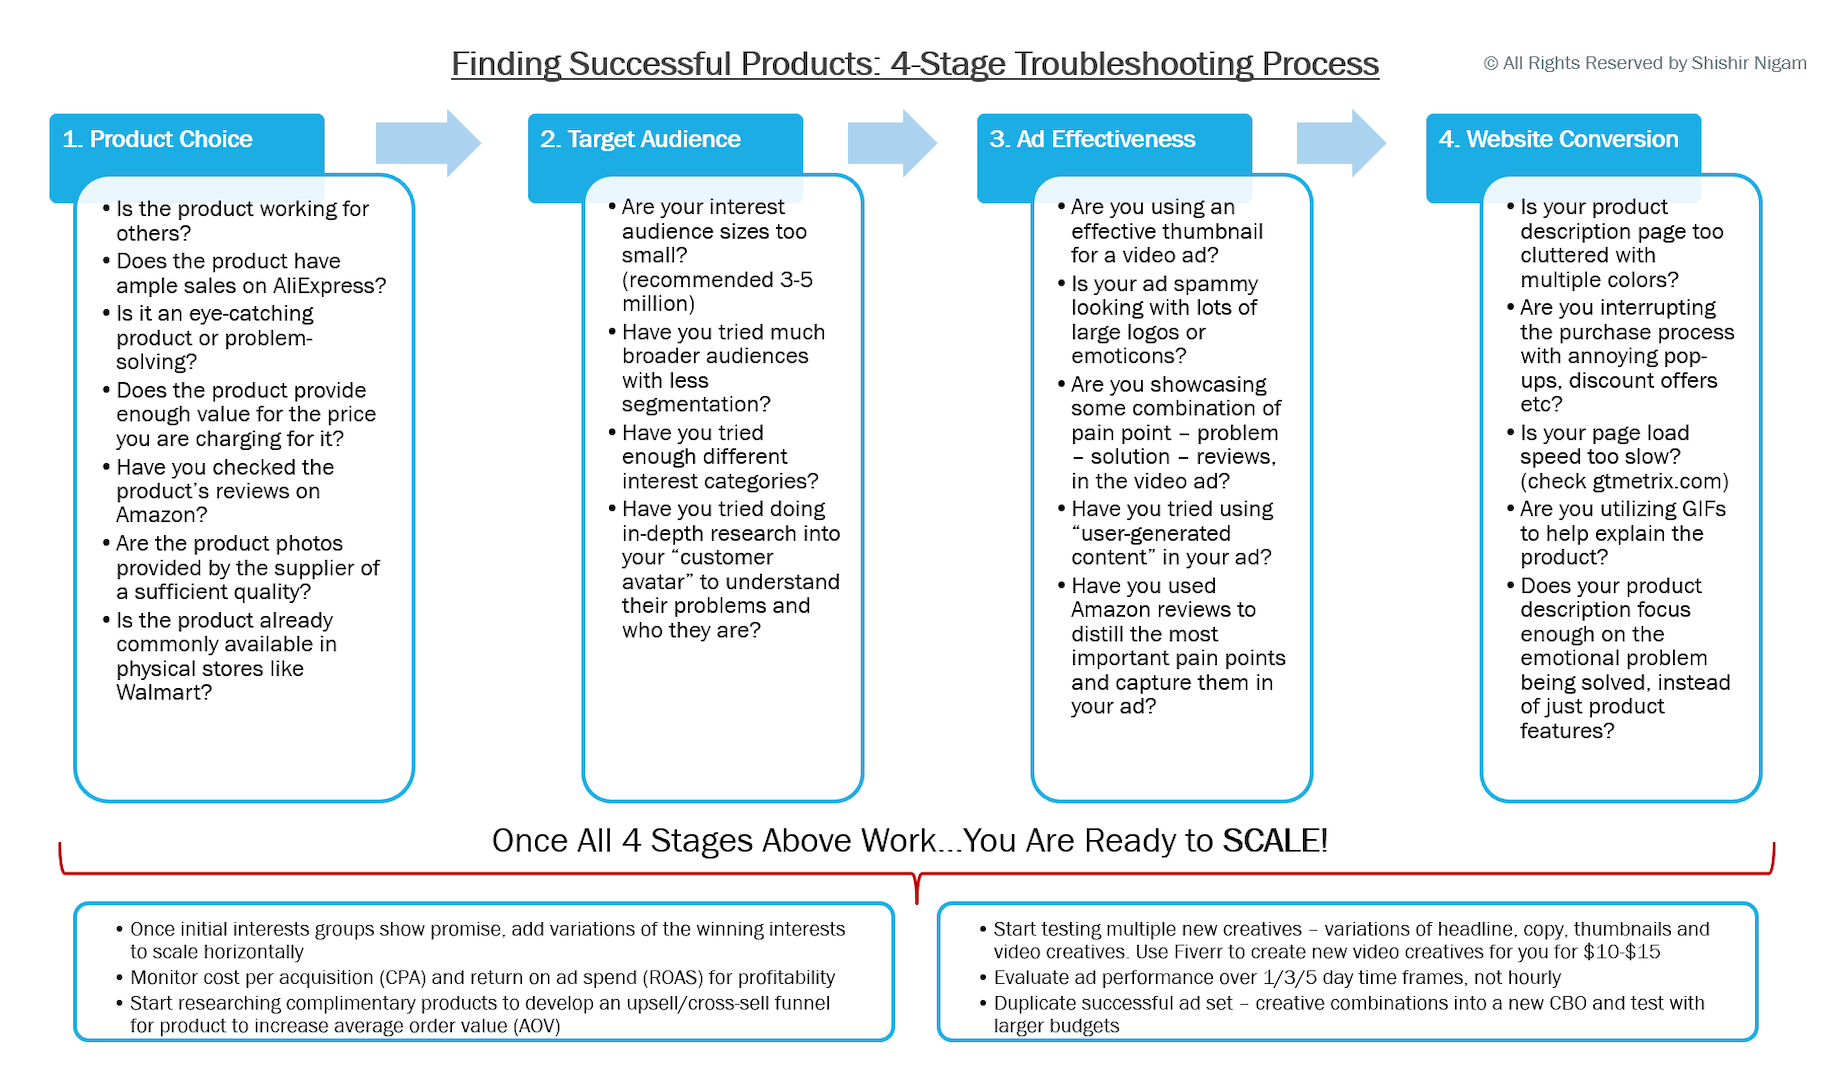 Finding Successful Products - 4-Stage Troubleshooting Process